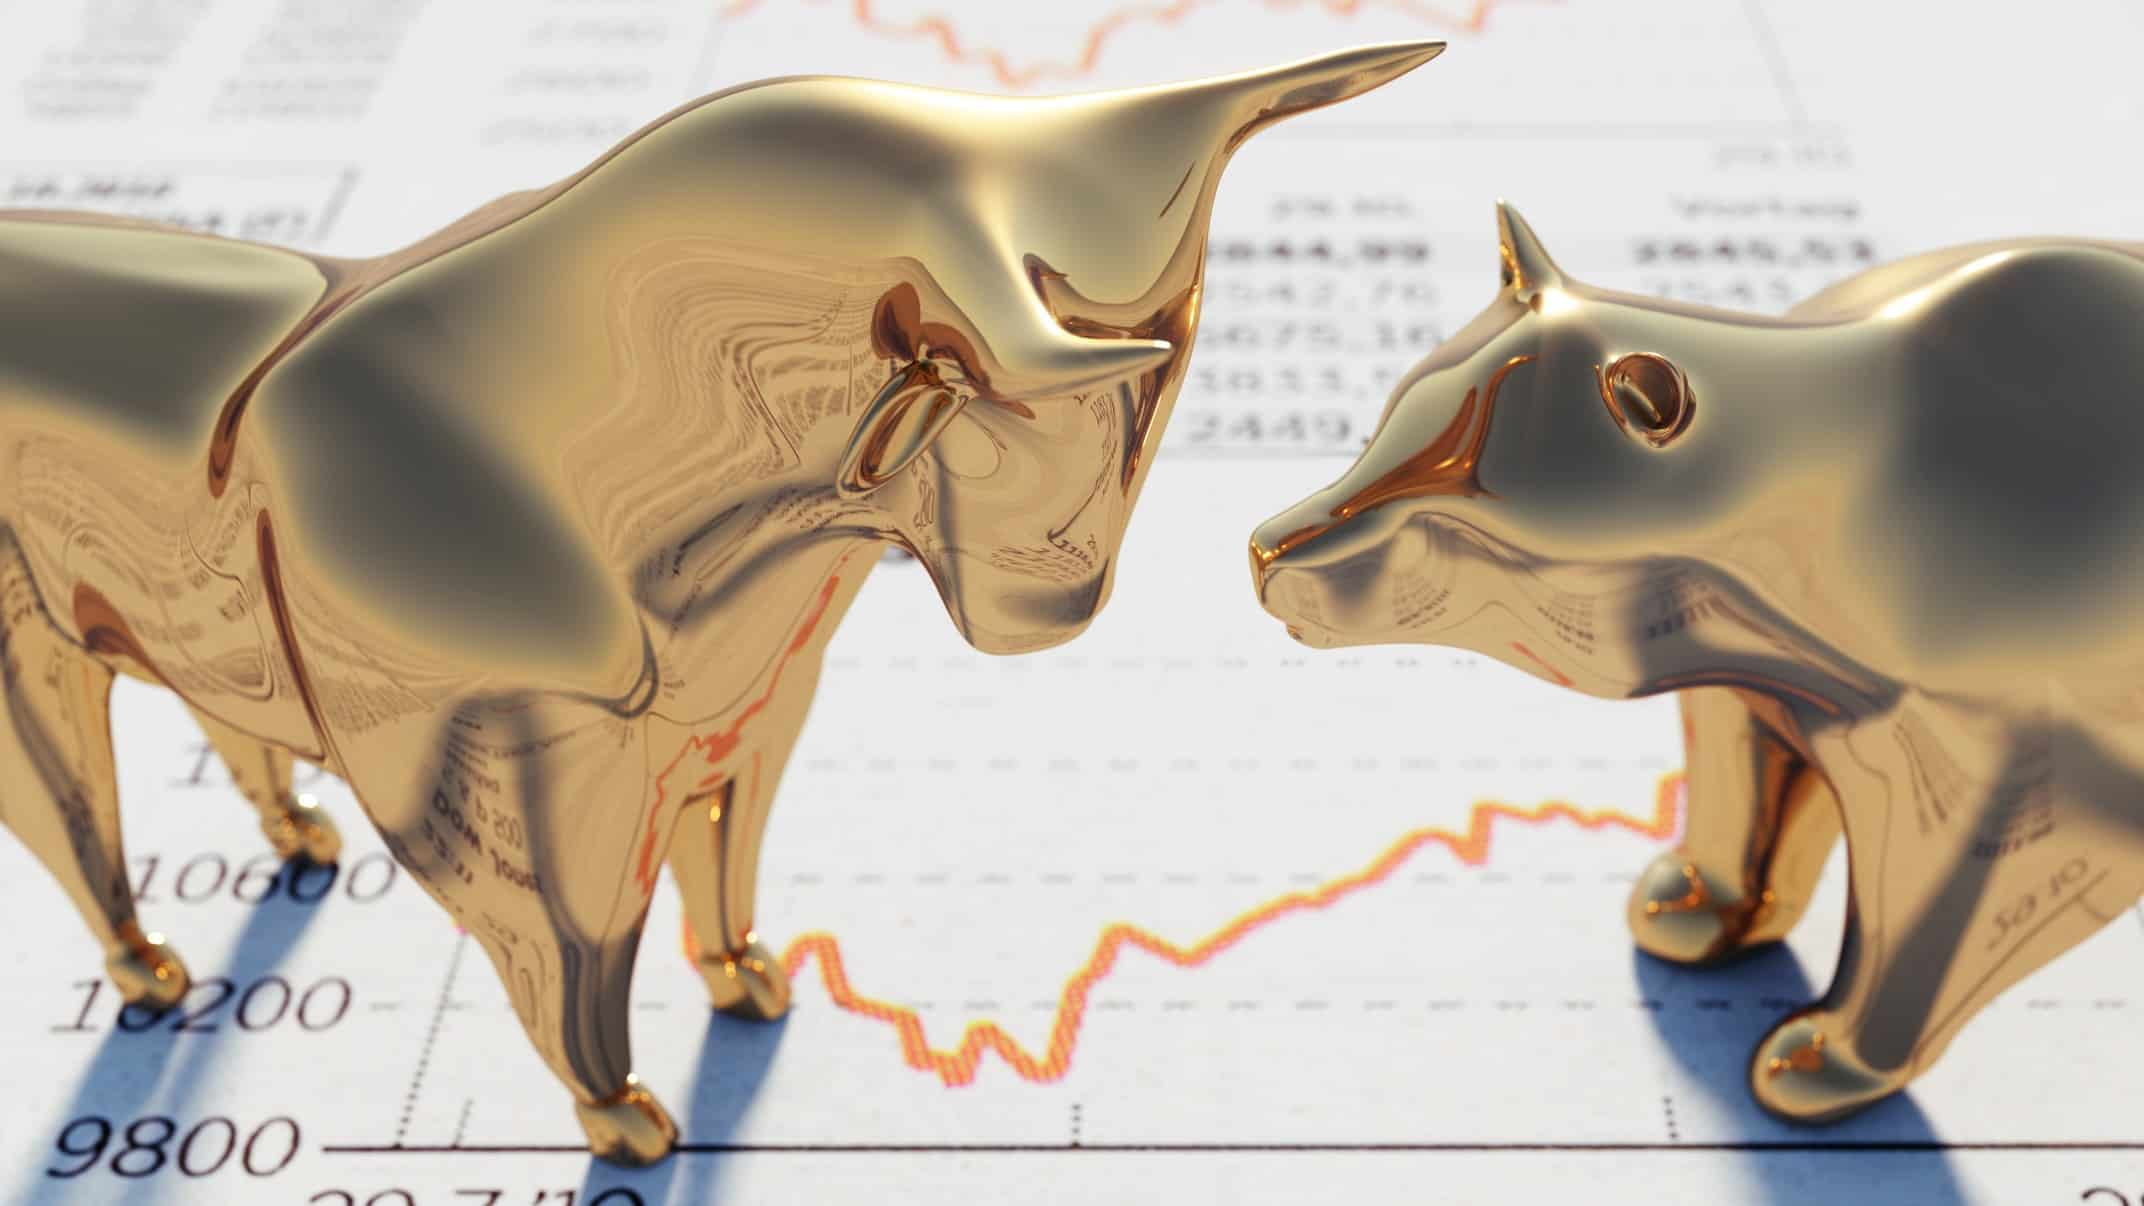 gold bull figurine standing on stock price charts representing rising asx share price